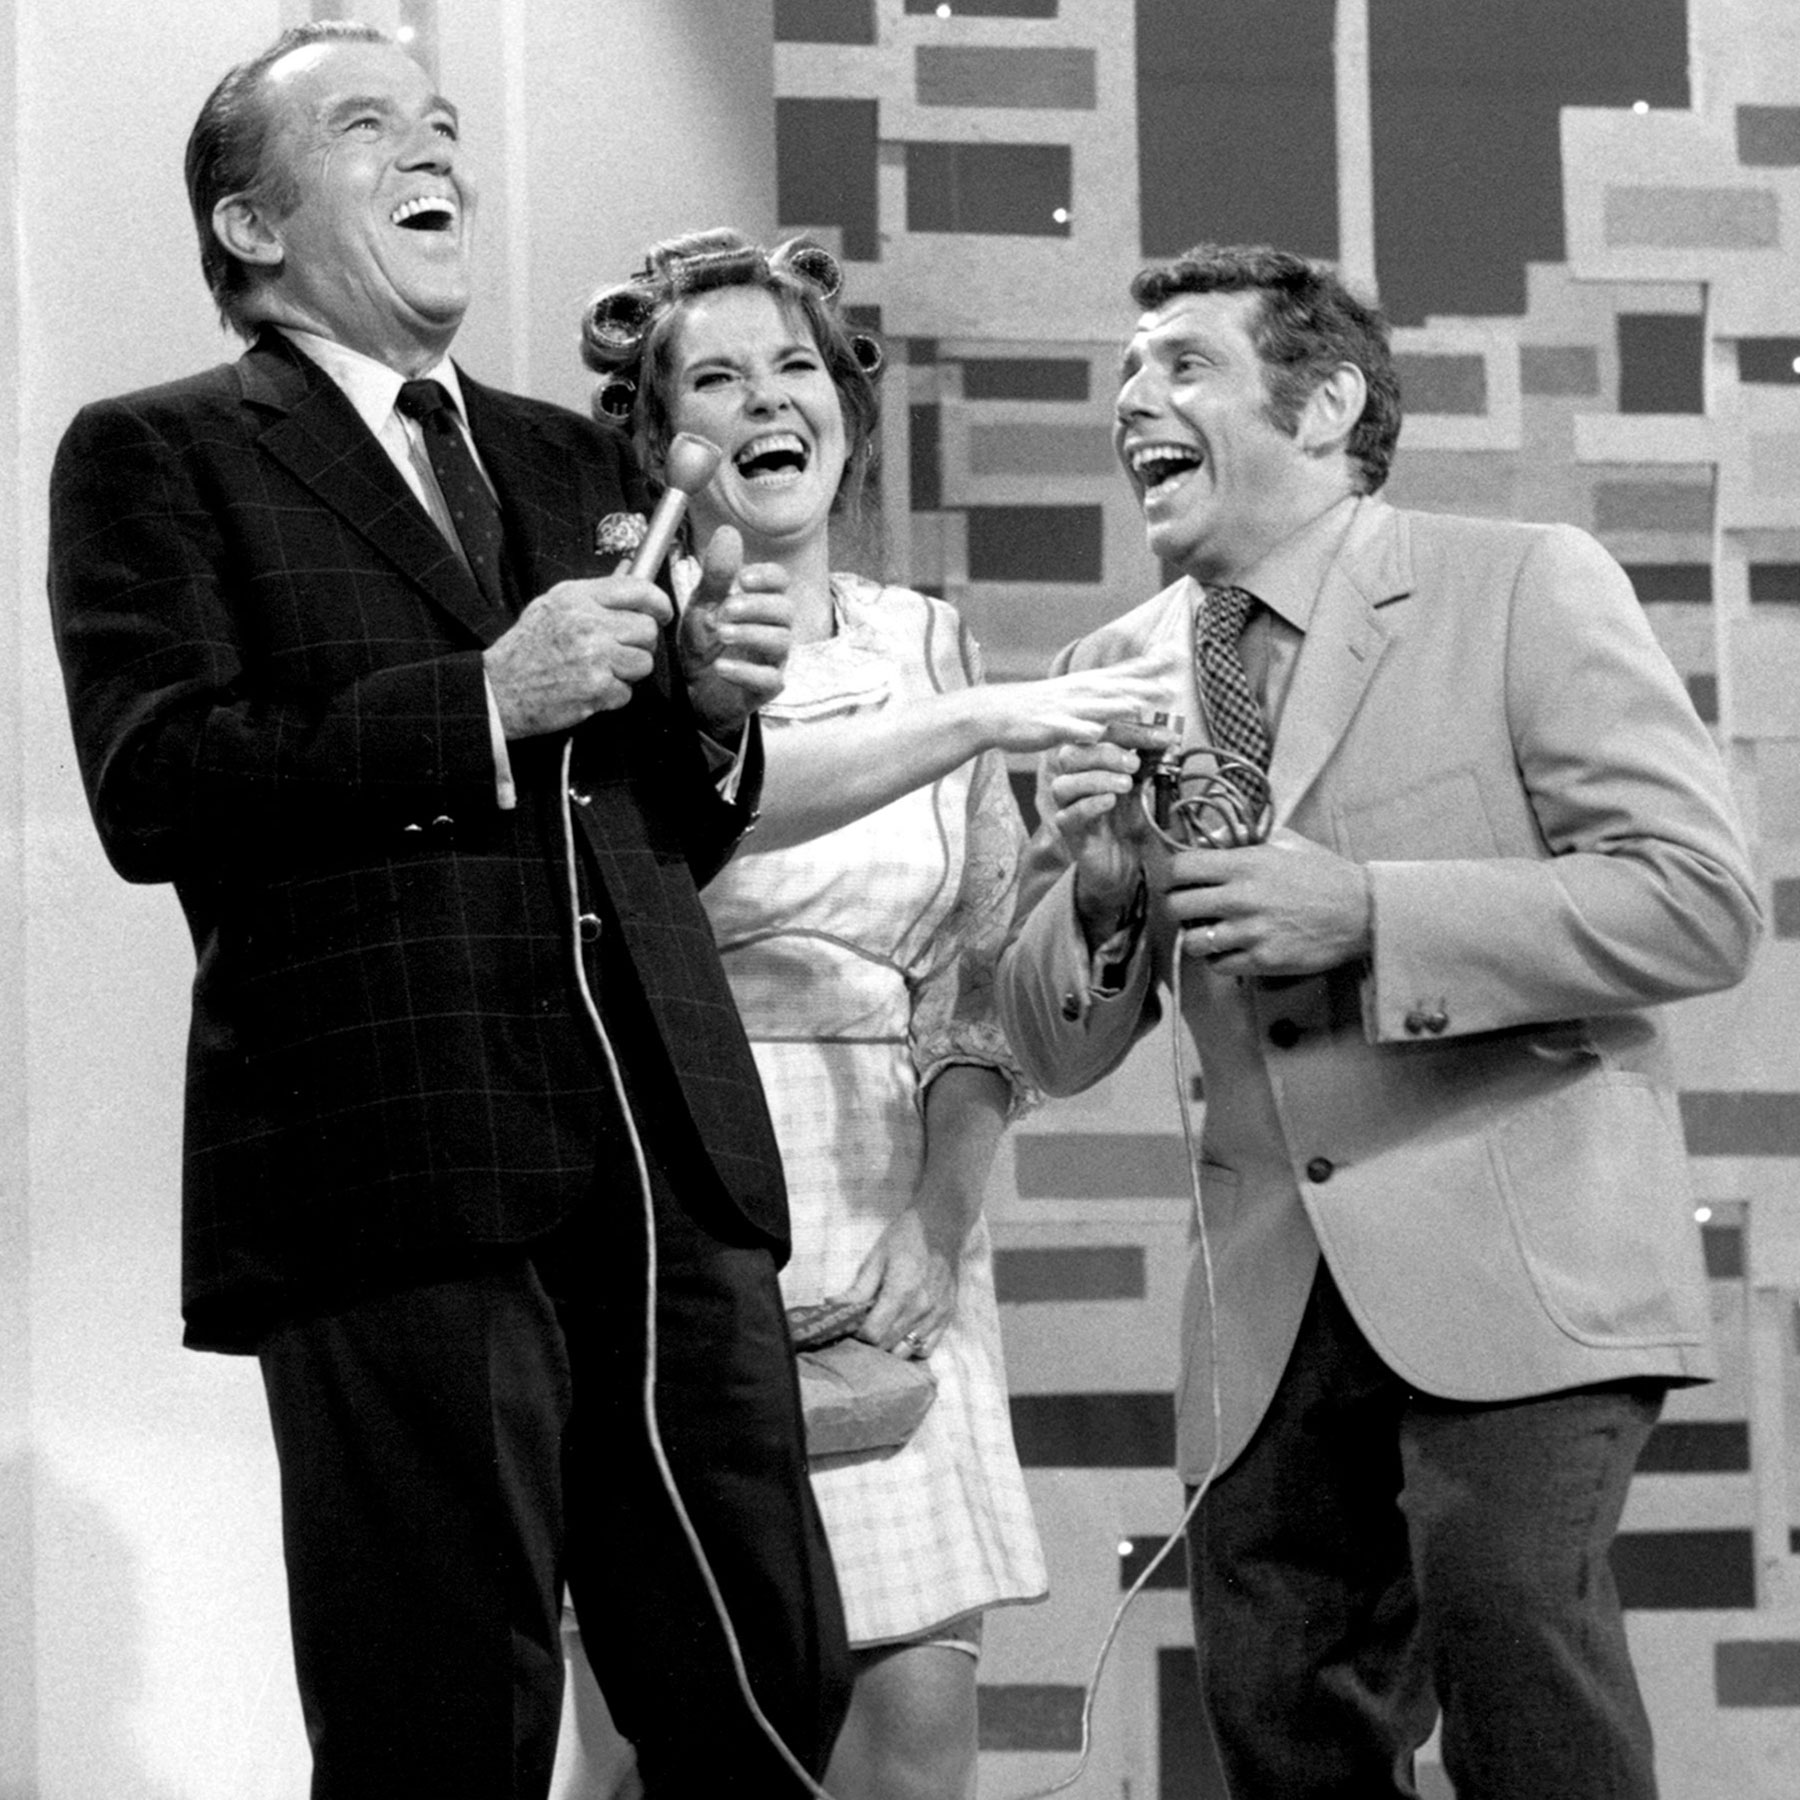 Ed Sullivan Cracks Up With Stiller & Meara